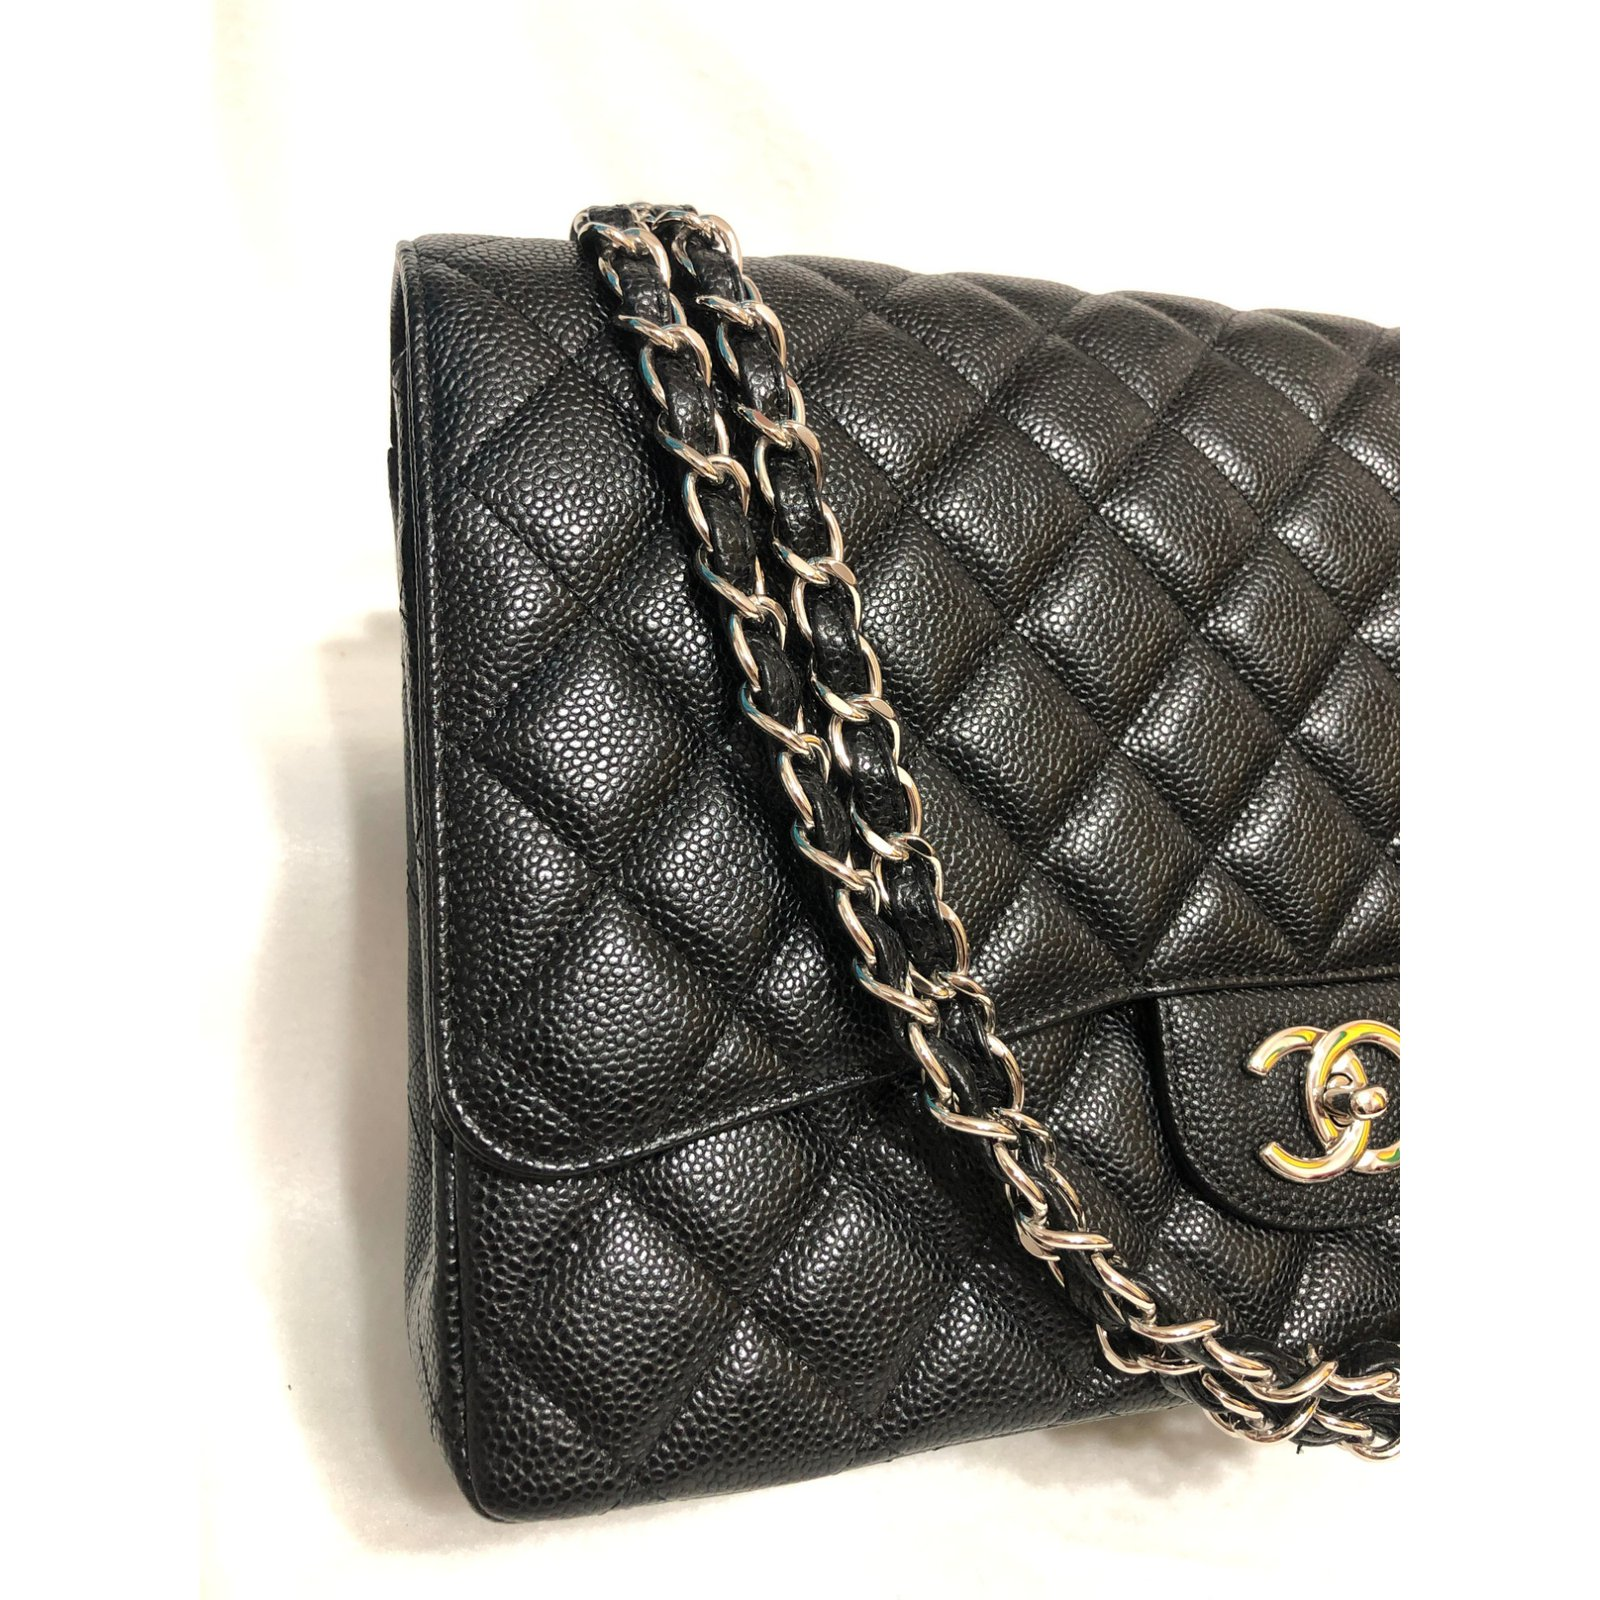 73170926b6ed Chanel Maxi Timeless double flap Handbags Leather Black ref.87923 ...